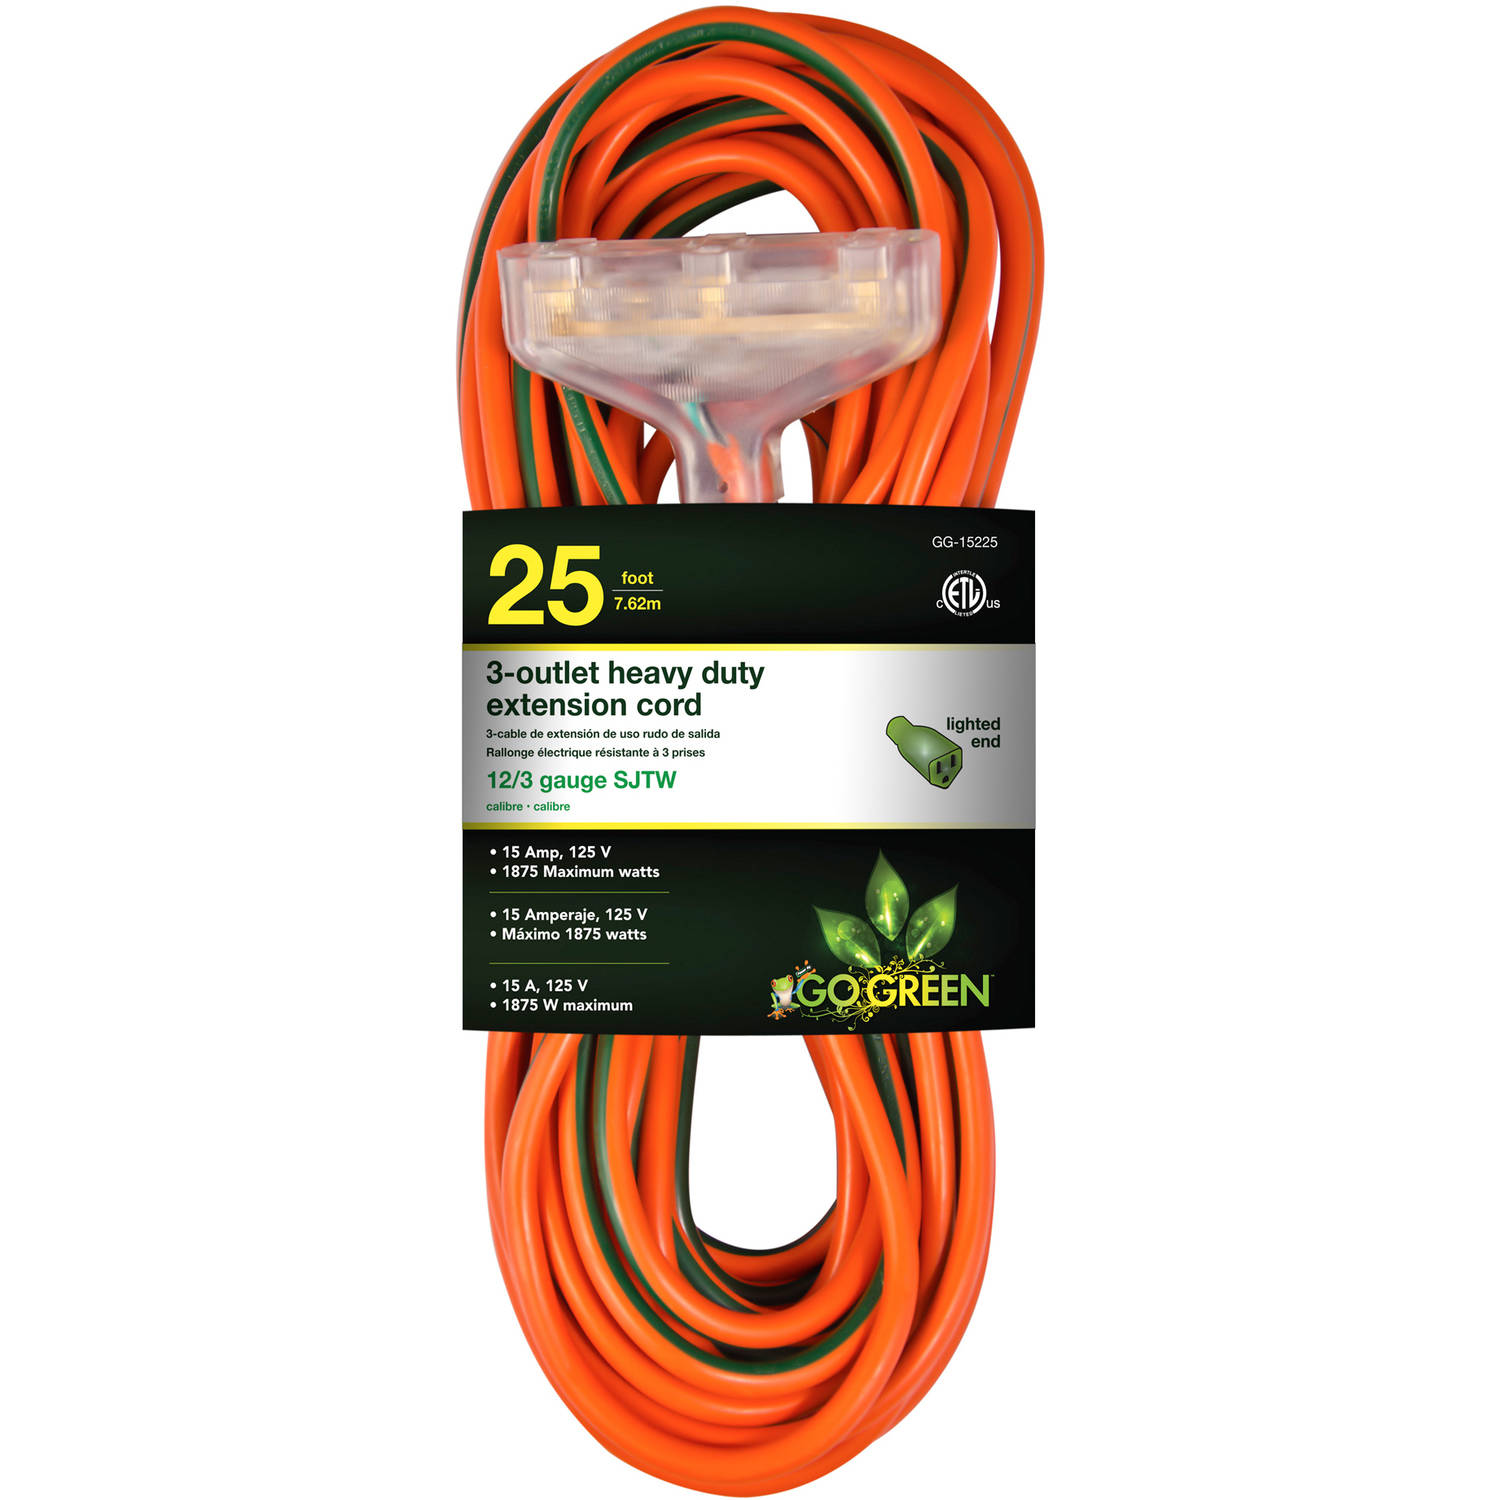 GoGreen Power 12/3 25' 15225 3-Outlet Heavy Duty Extension Cord, Lighted End